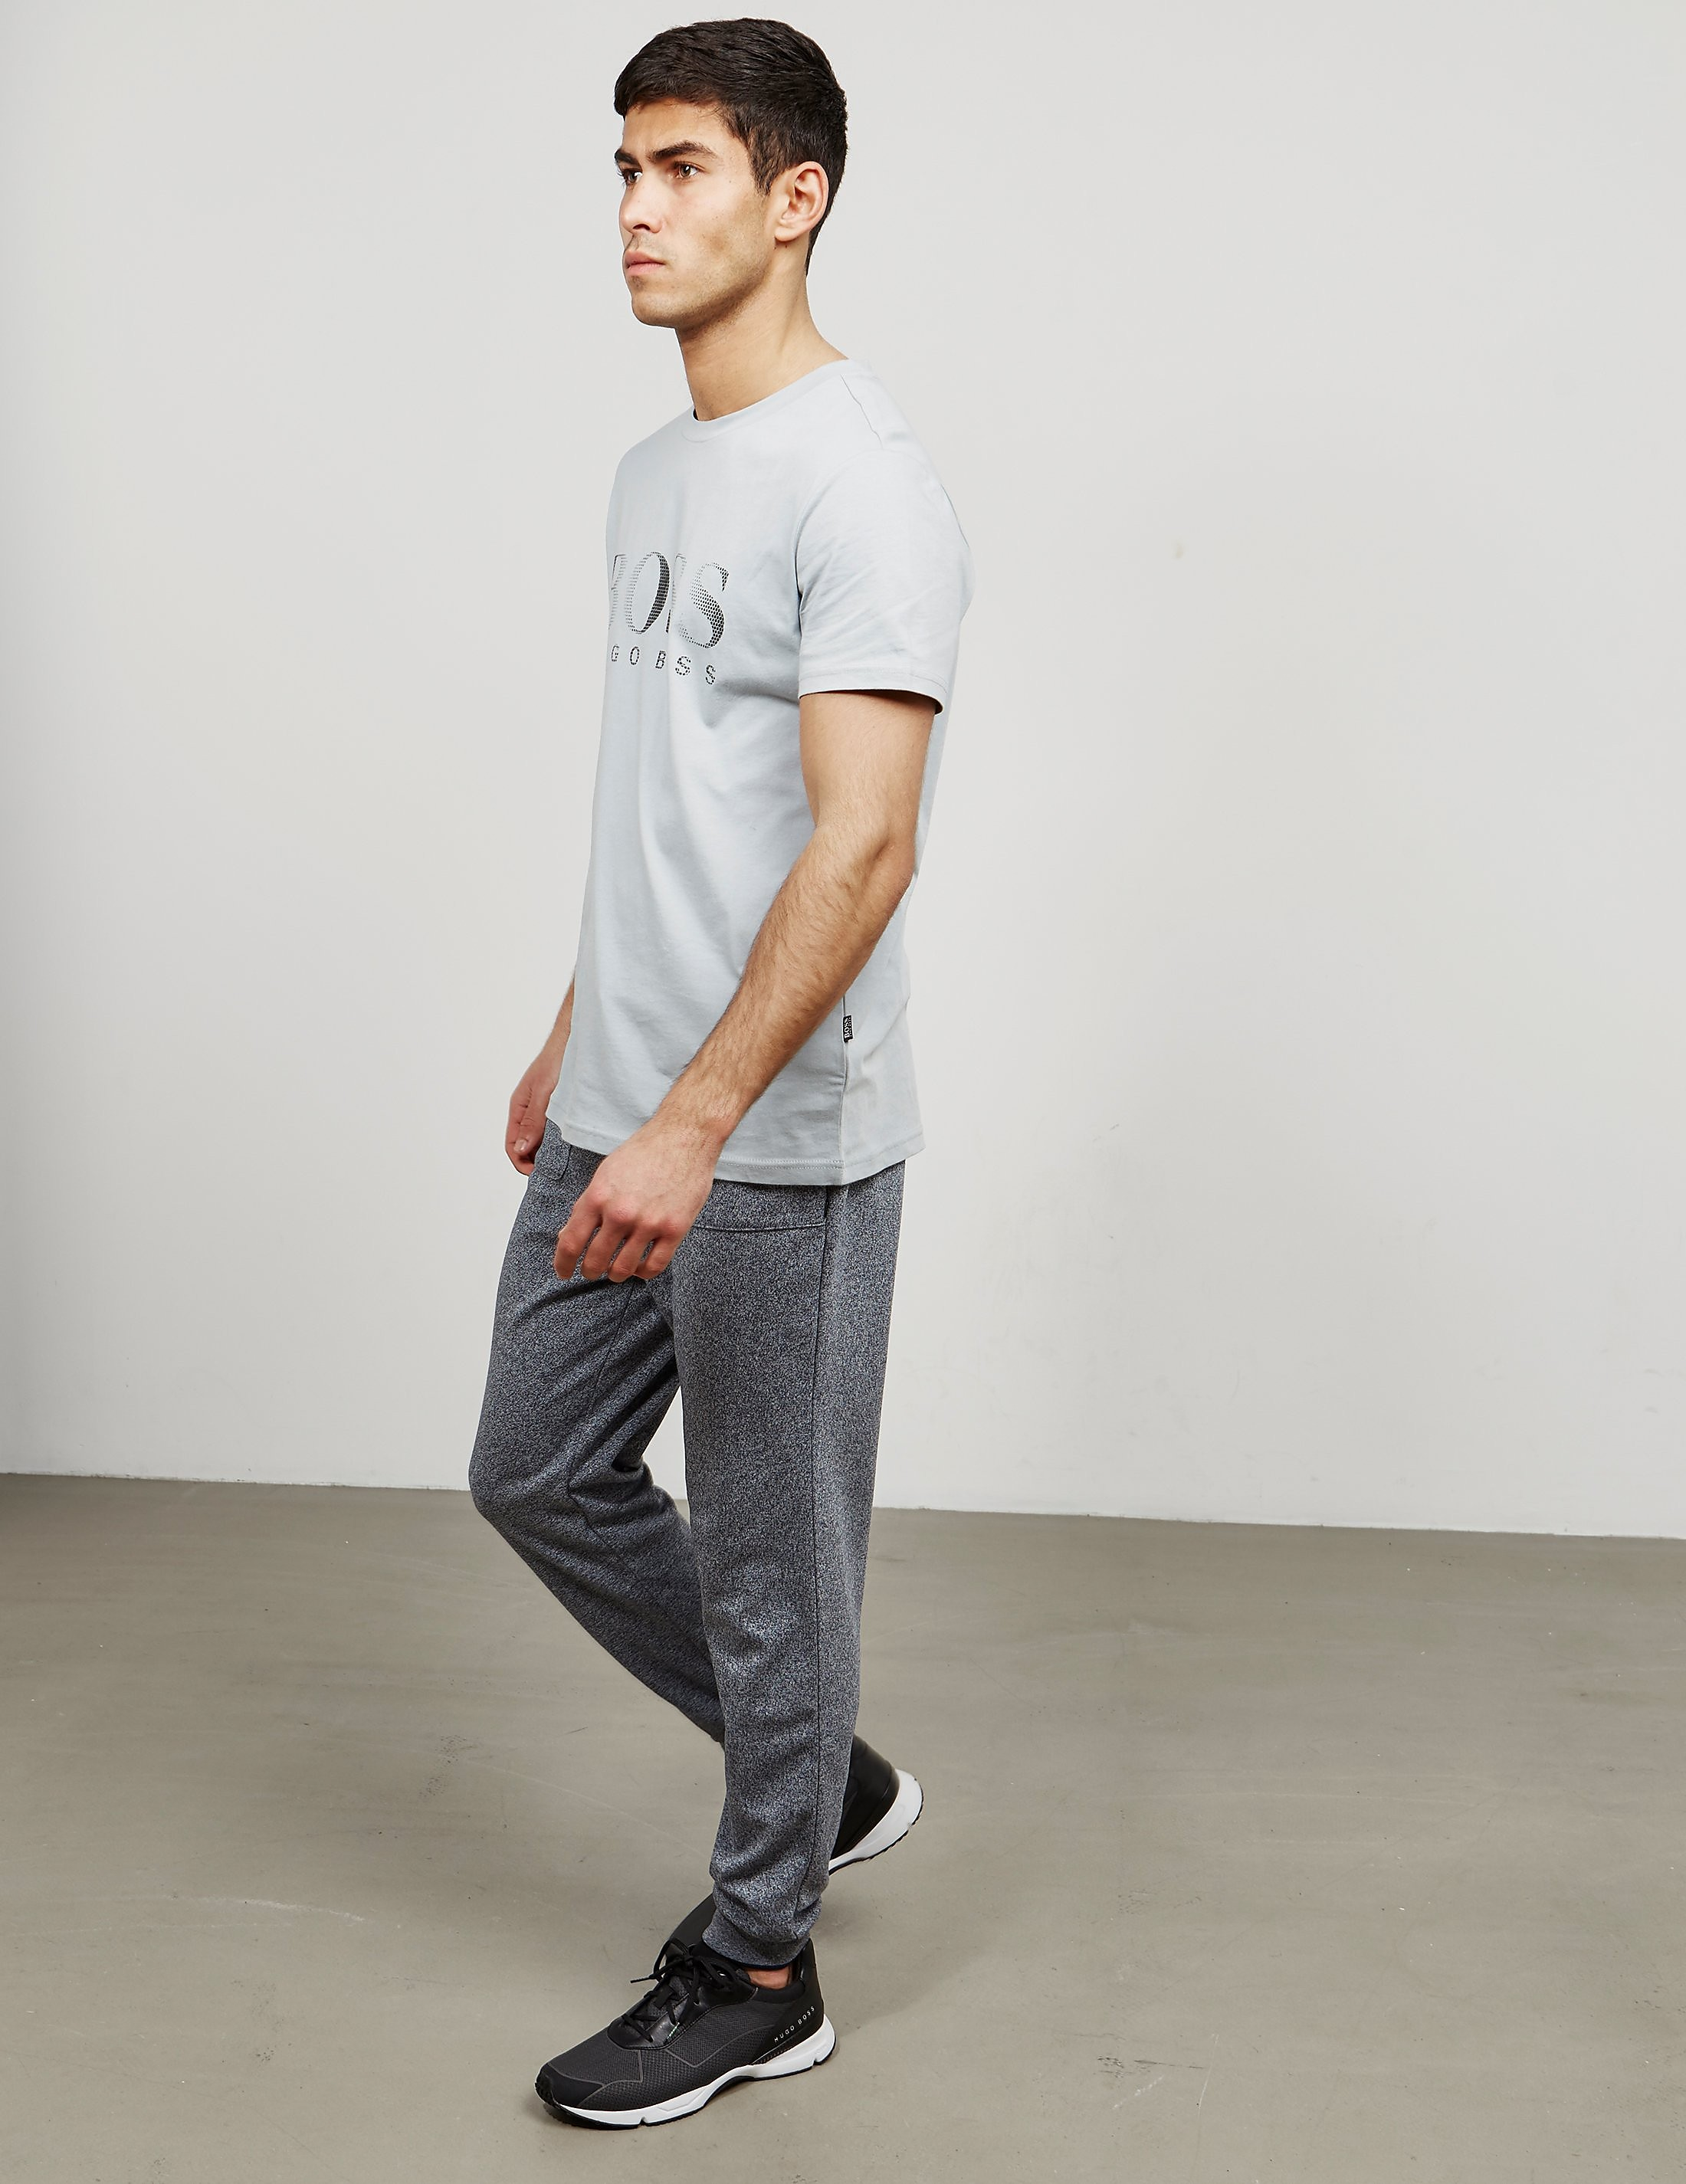 BOSS Heritage Cuffed Track Pants